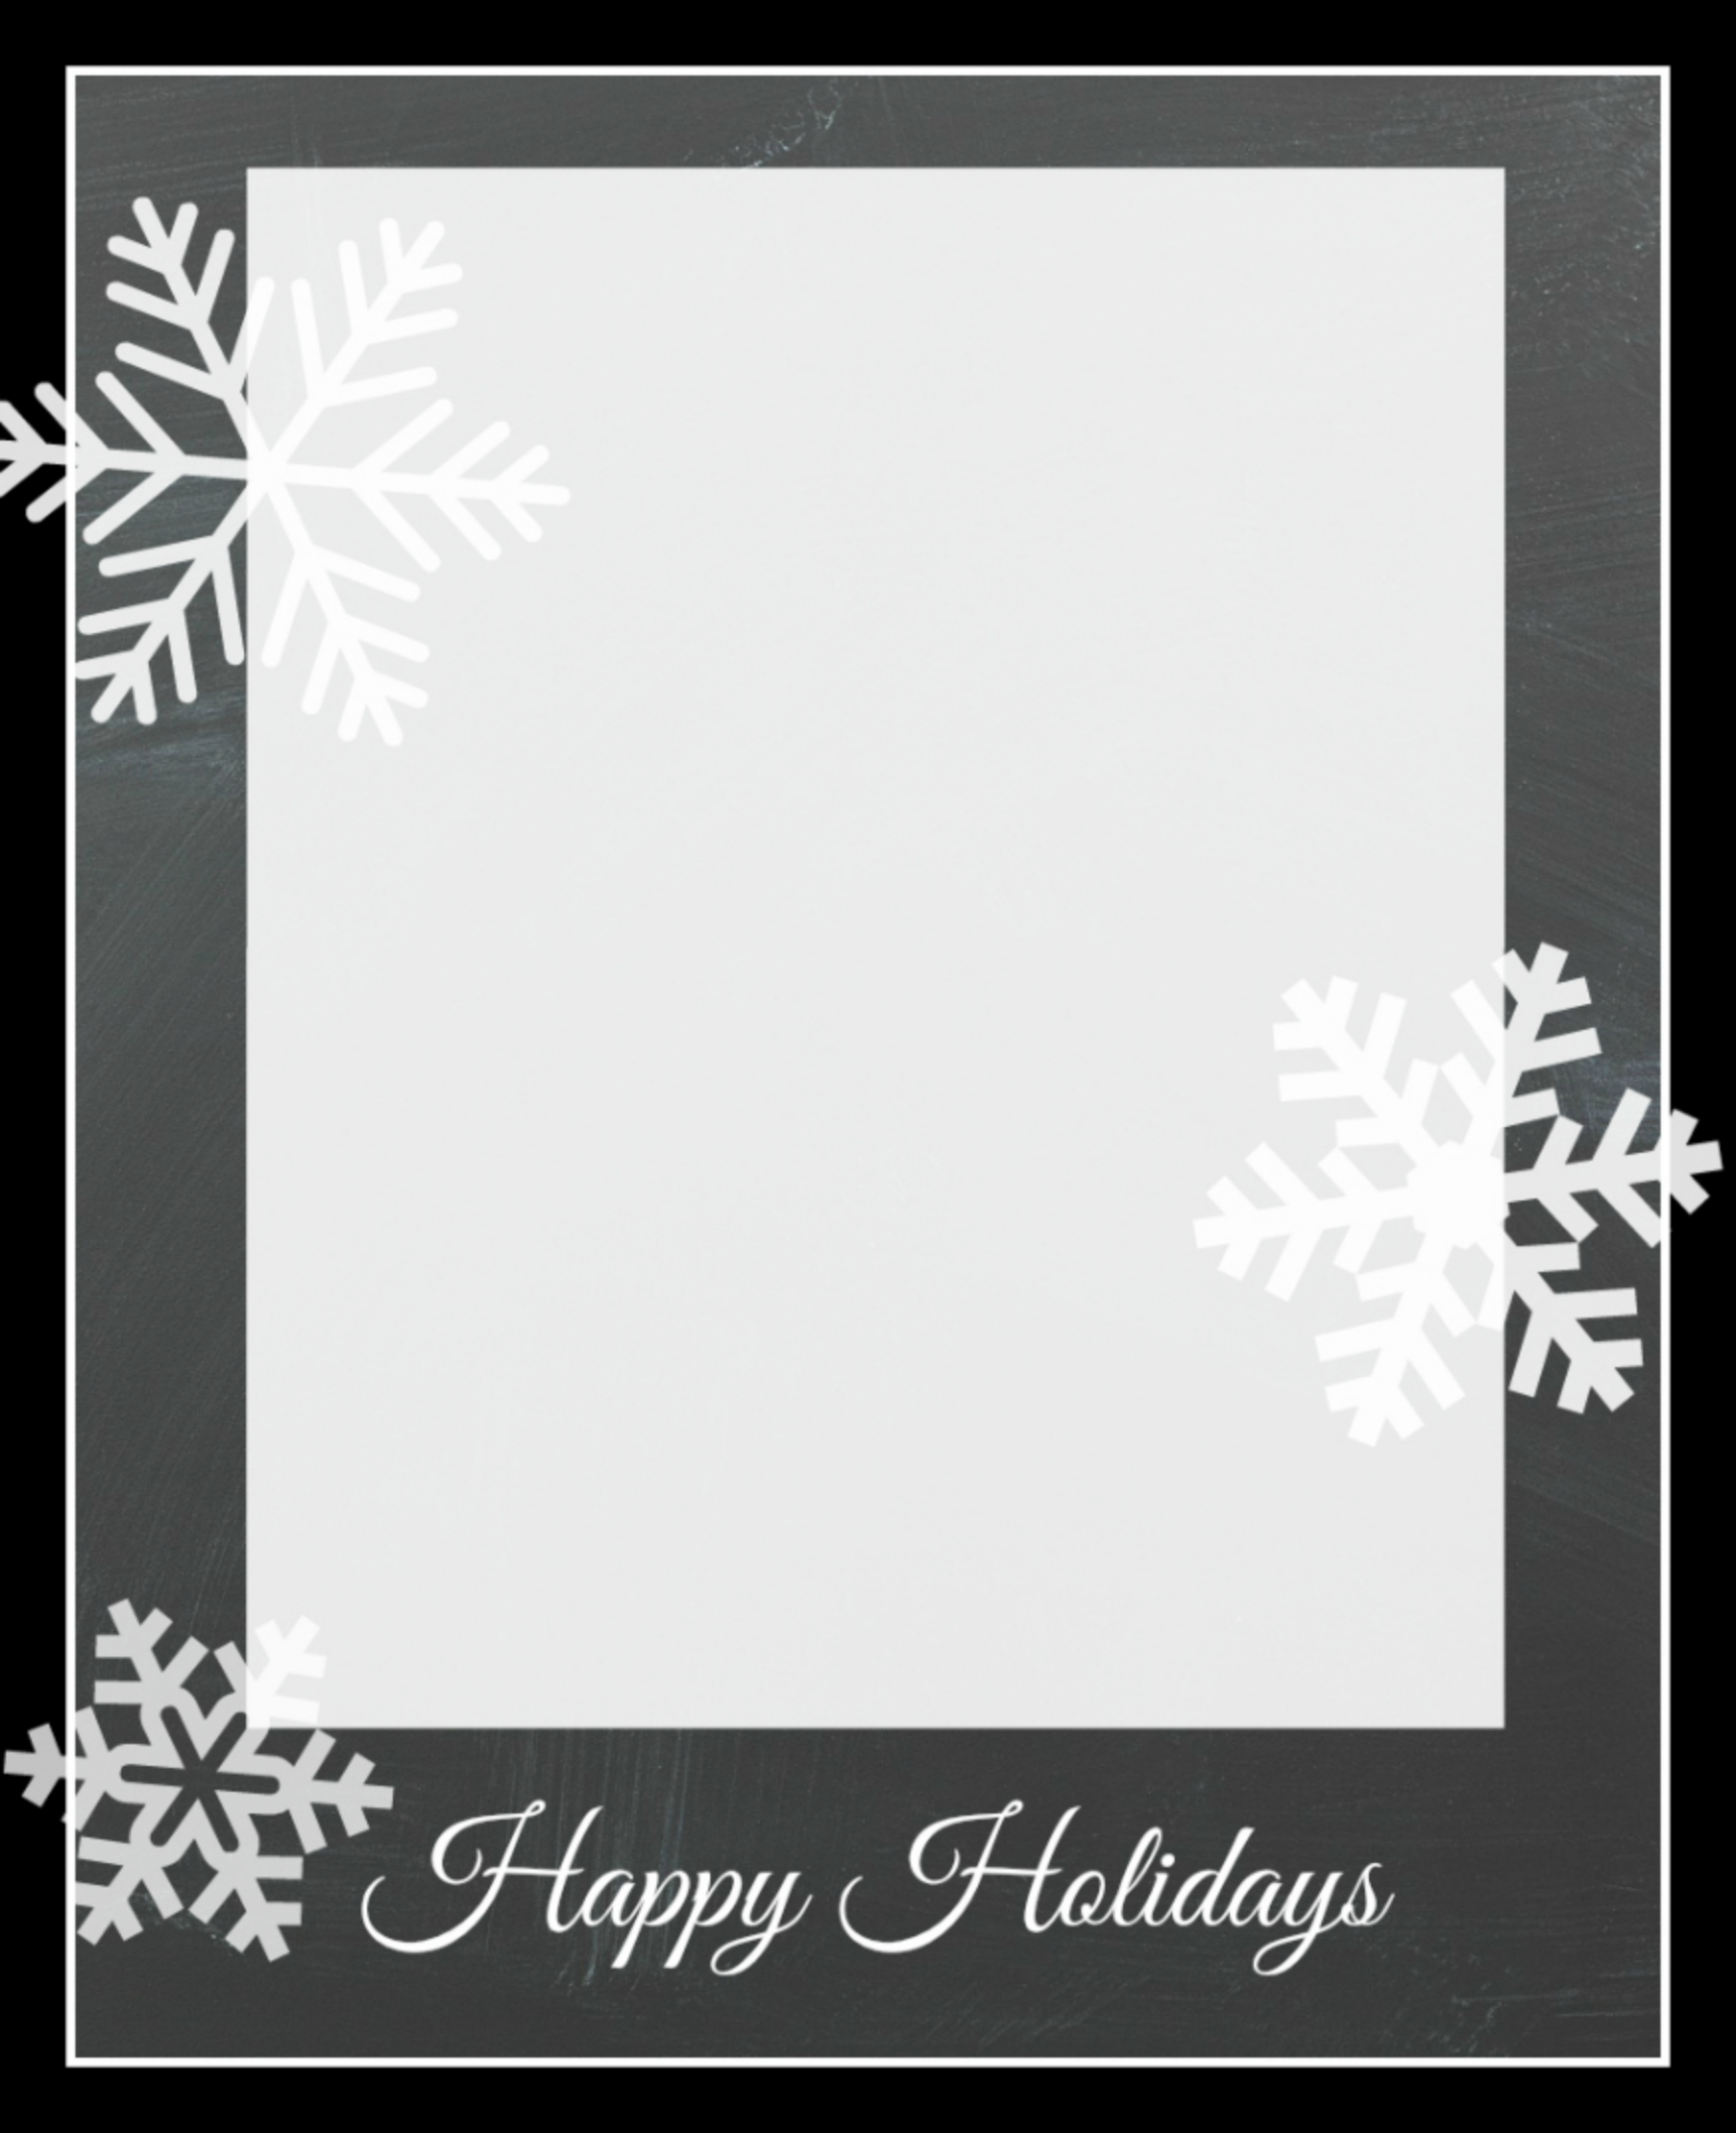 Free Christmas Card Templates   Crazy Little Projects